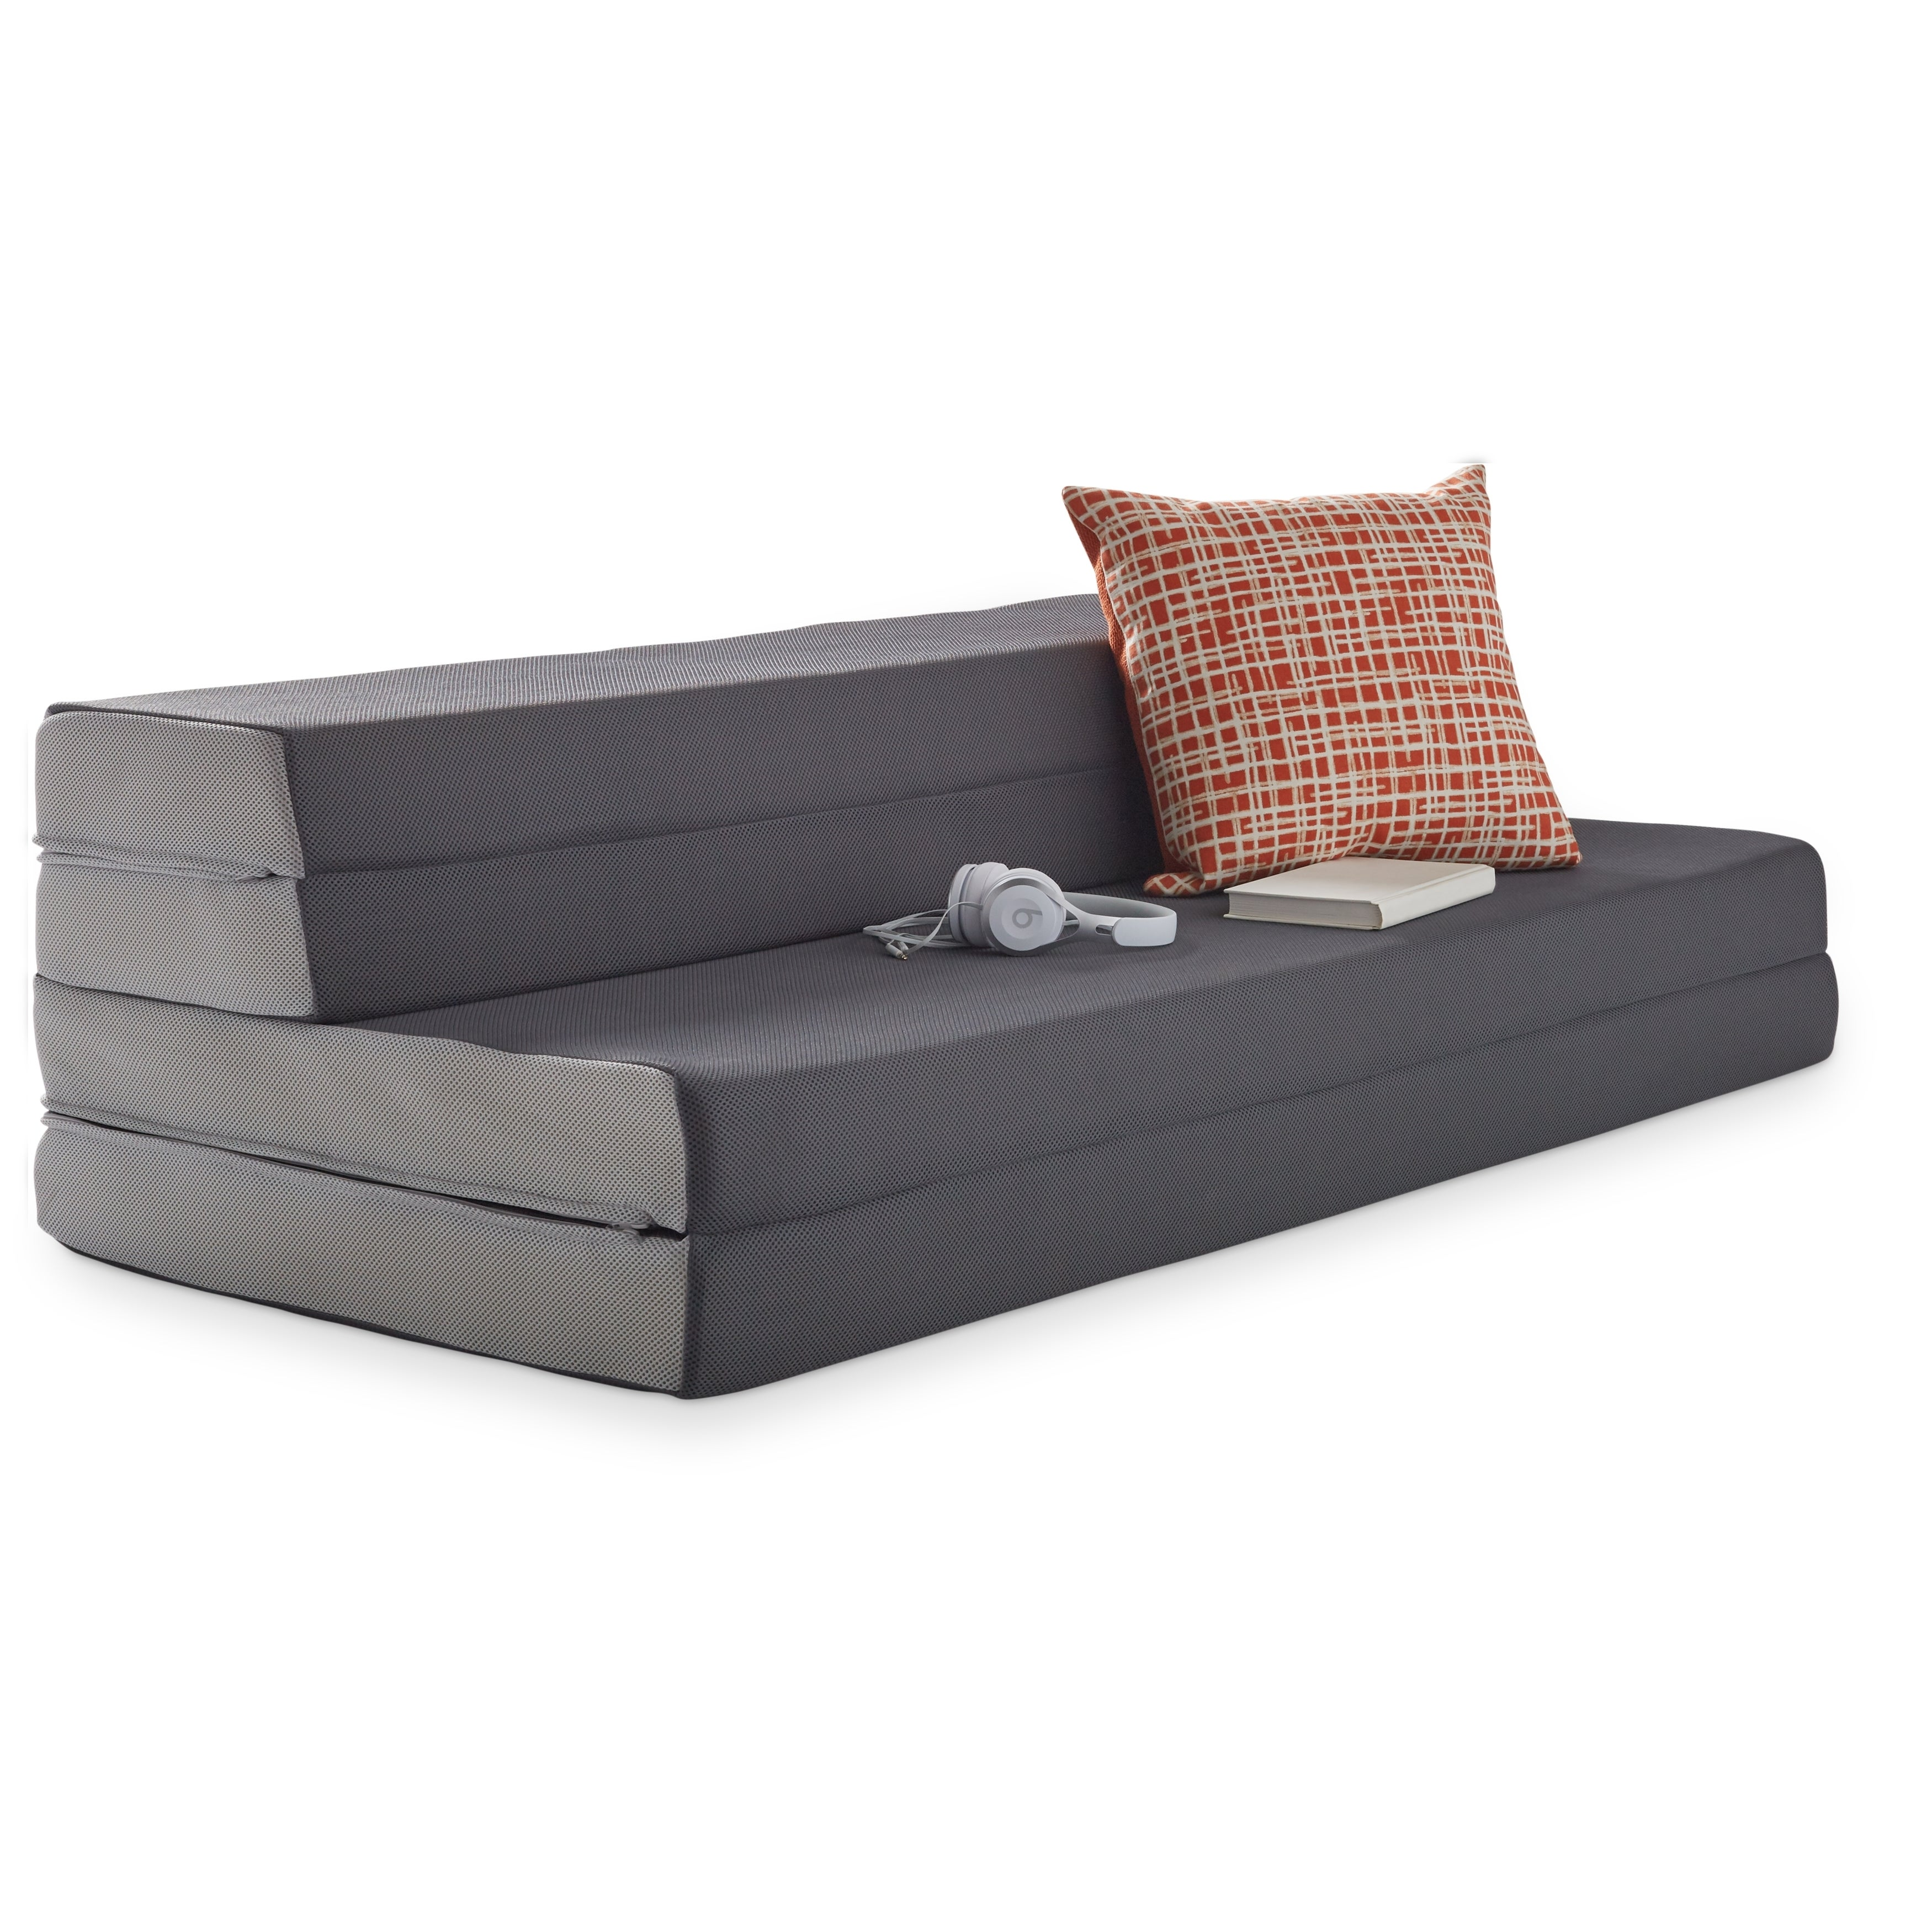 LUCID 4inch Folding Mattress and Sofa Bed Free Shipping Today